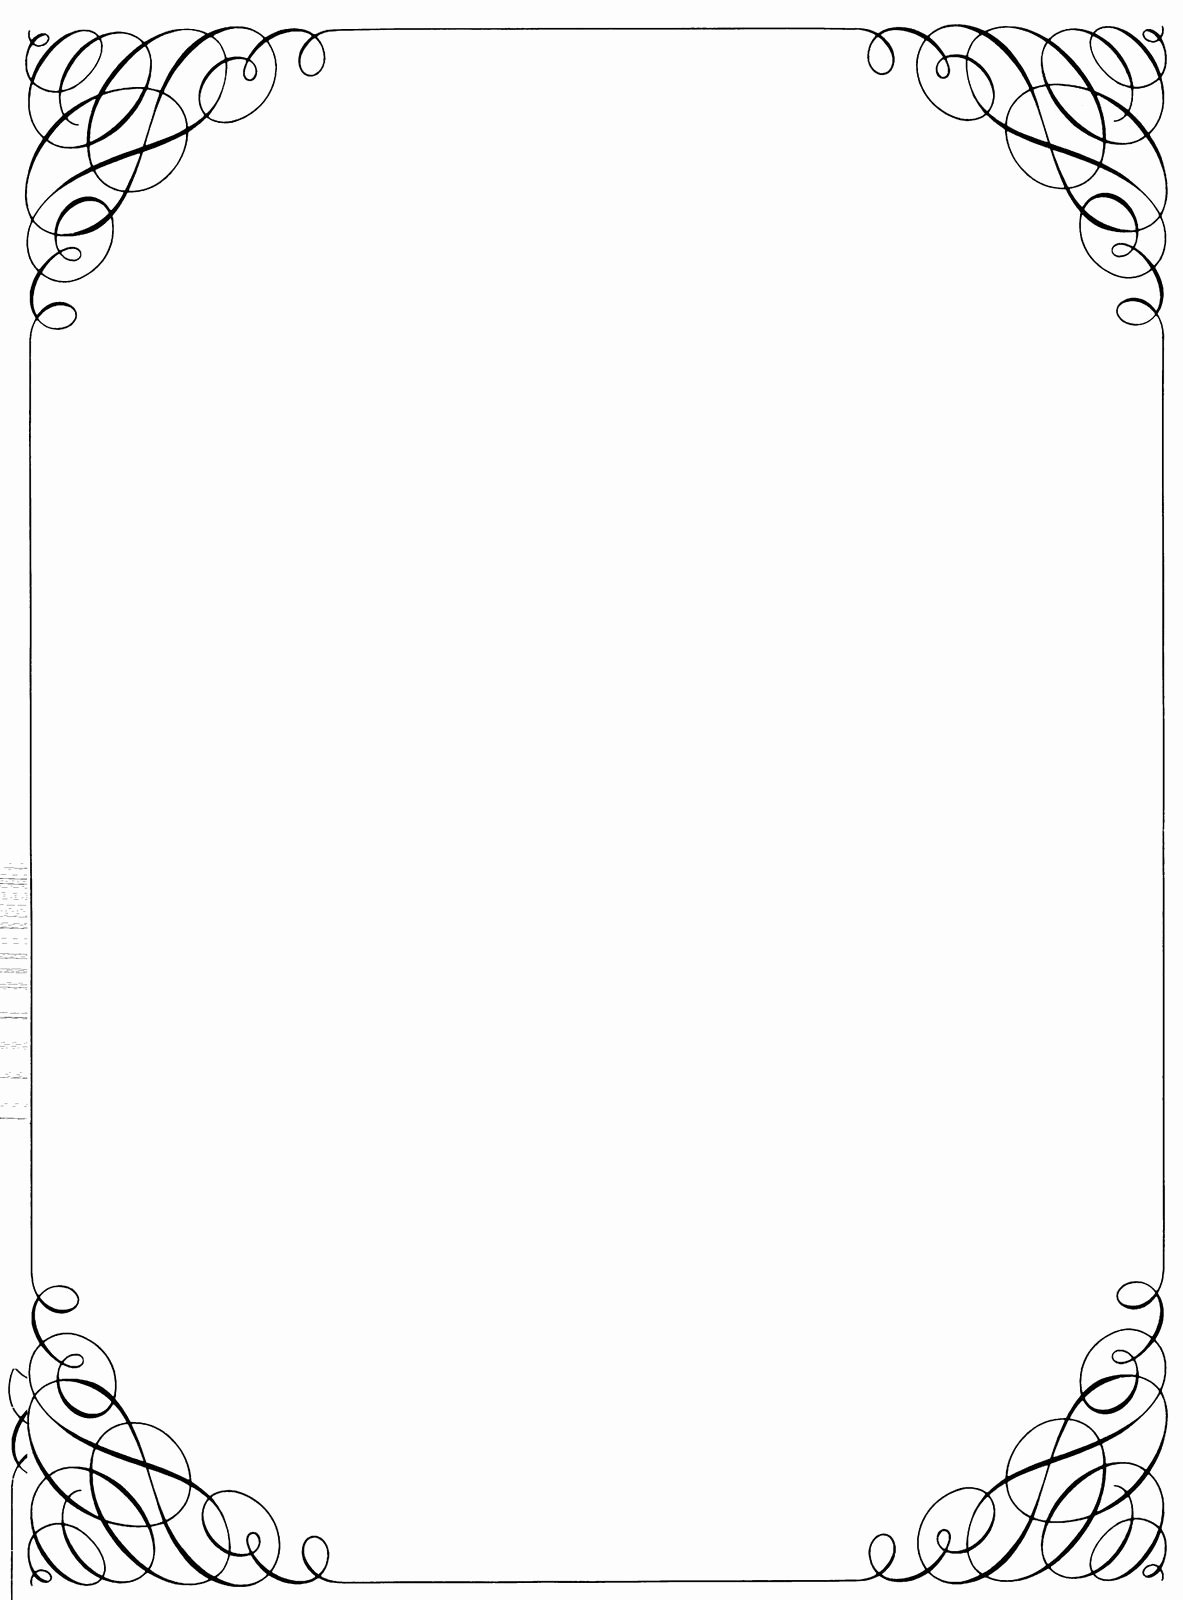 Simple White Paper Template Lovely Black and White Christmas Borders and Frames 110 X 150